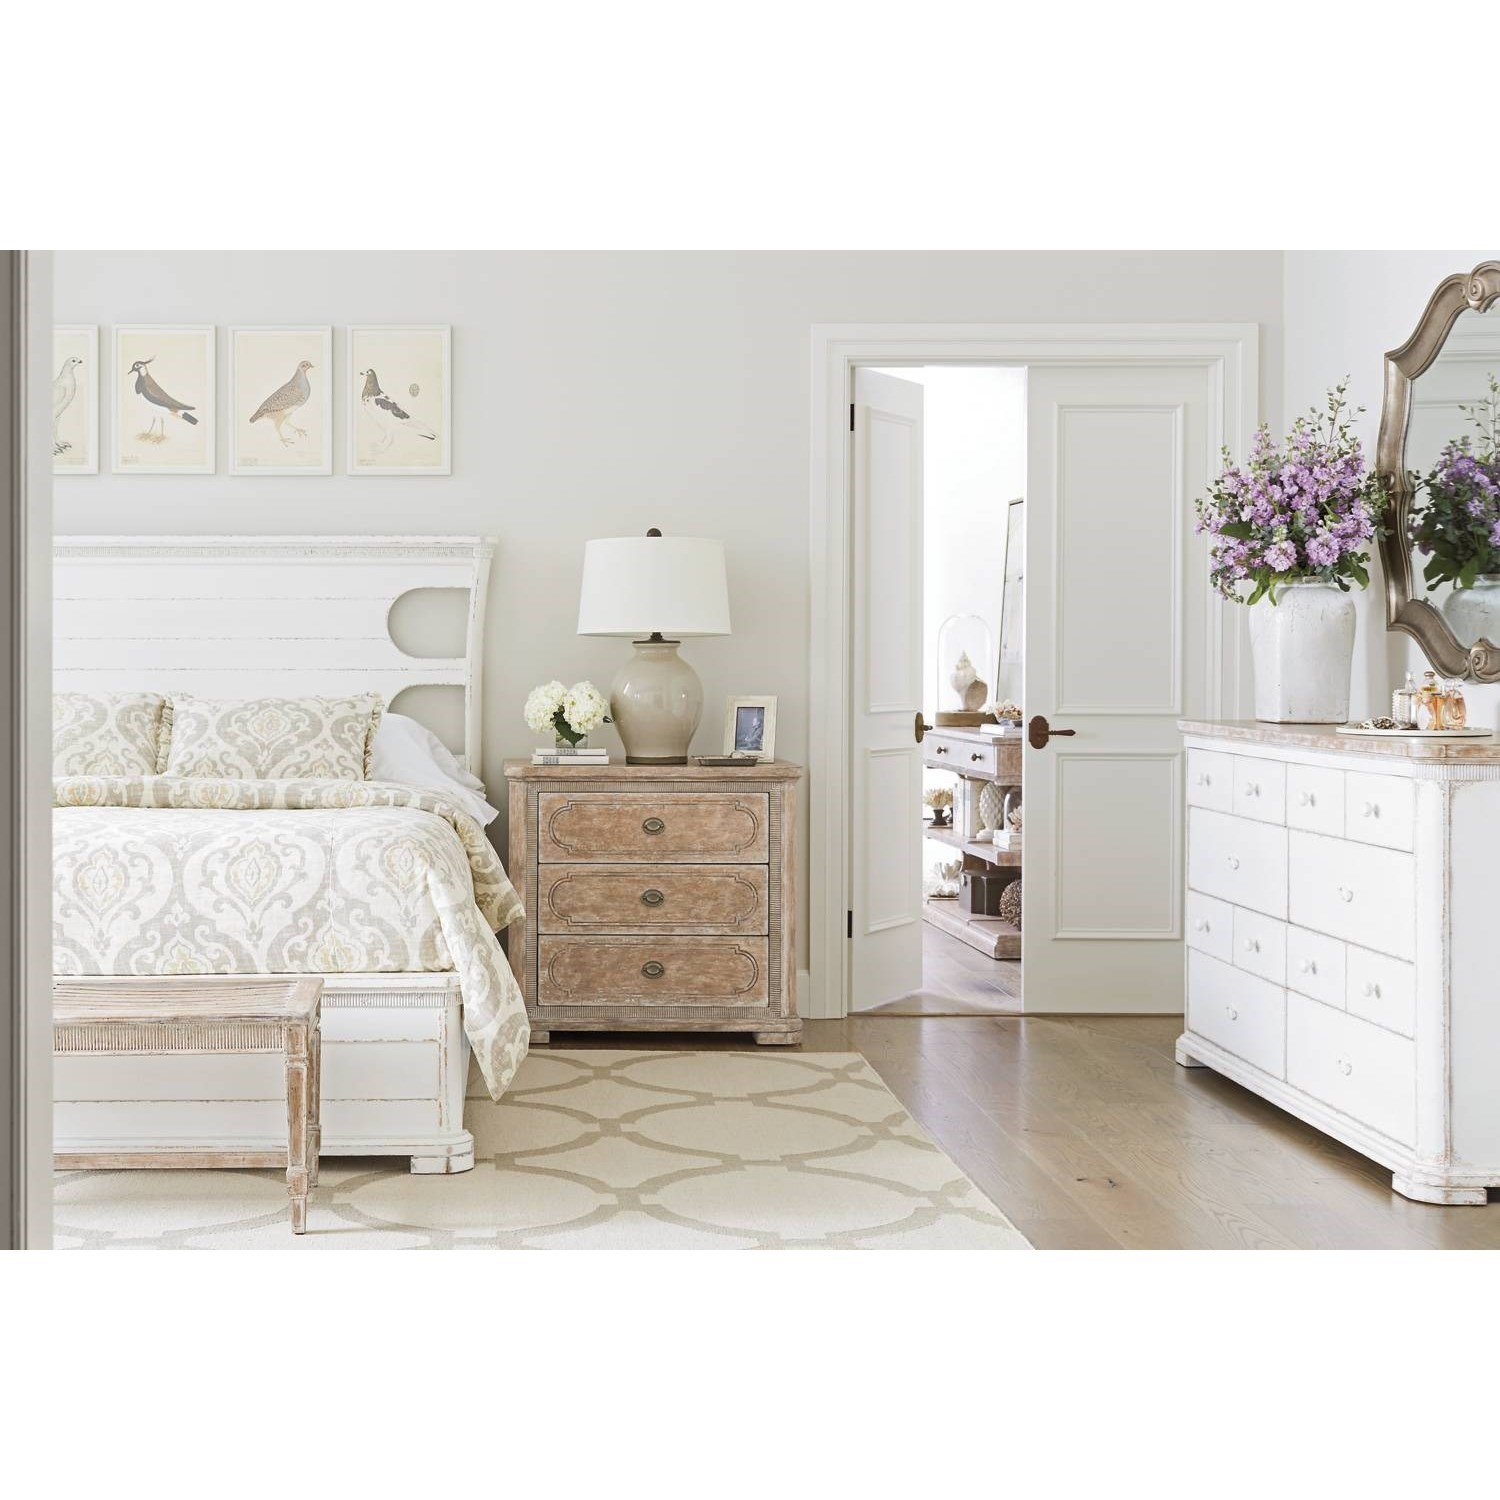 stanley furniture juniper dell king bedroom group dunk bright furniture bedroom groups. Black Bedroom Furniture Sets. Home Design Ideas